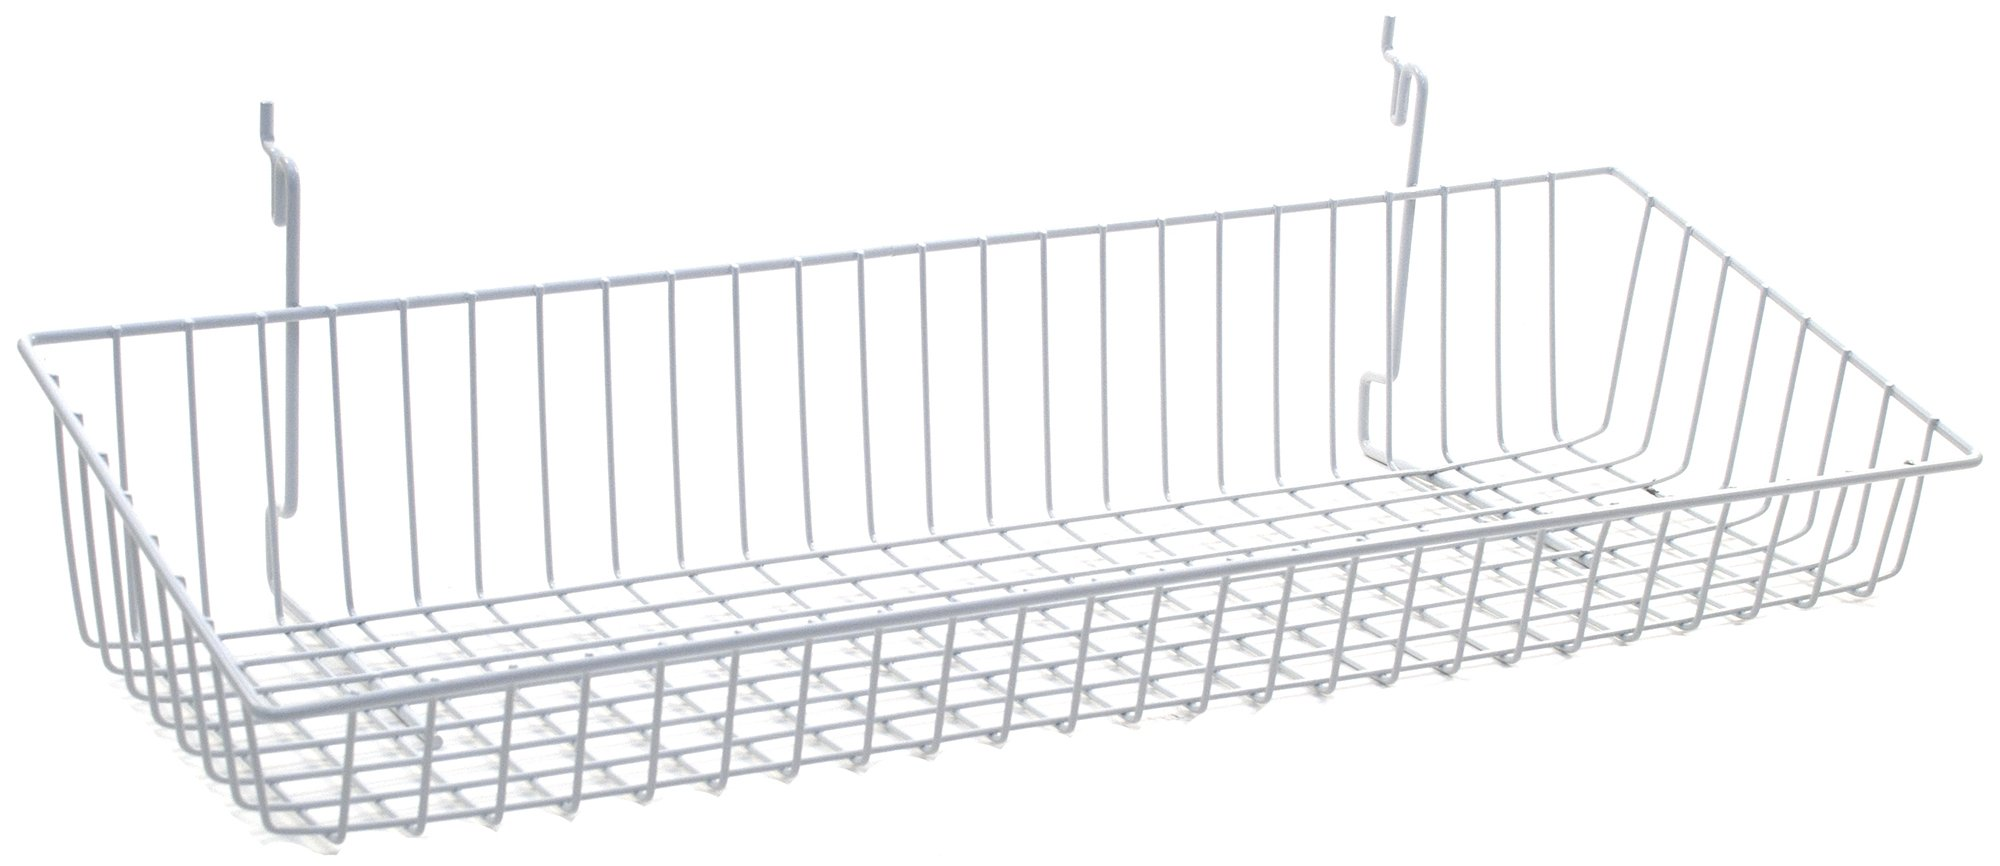 KC Store Fixtures A03033 Sloping Basket Fits Slatwall, Grid, Pegboard, 24'' W x 8'' D x 4'' H Back x 2'' H Front, White (Pack of 6)